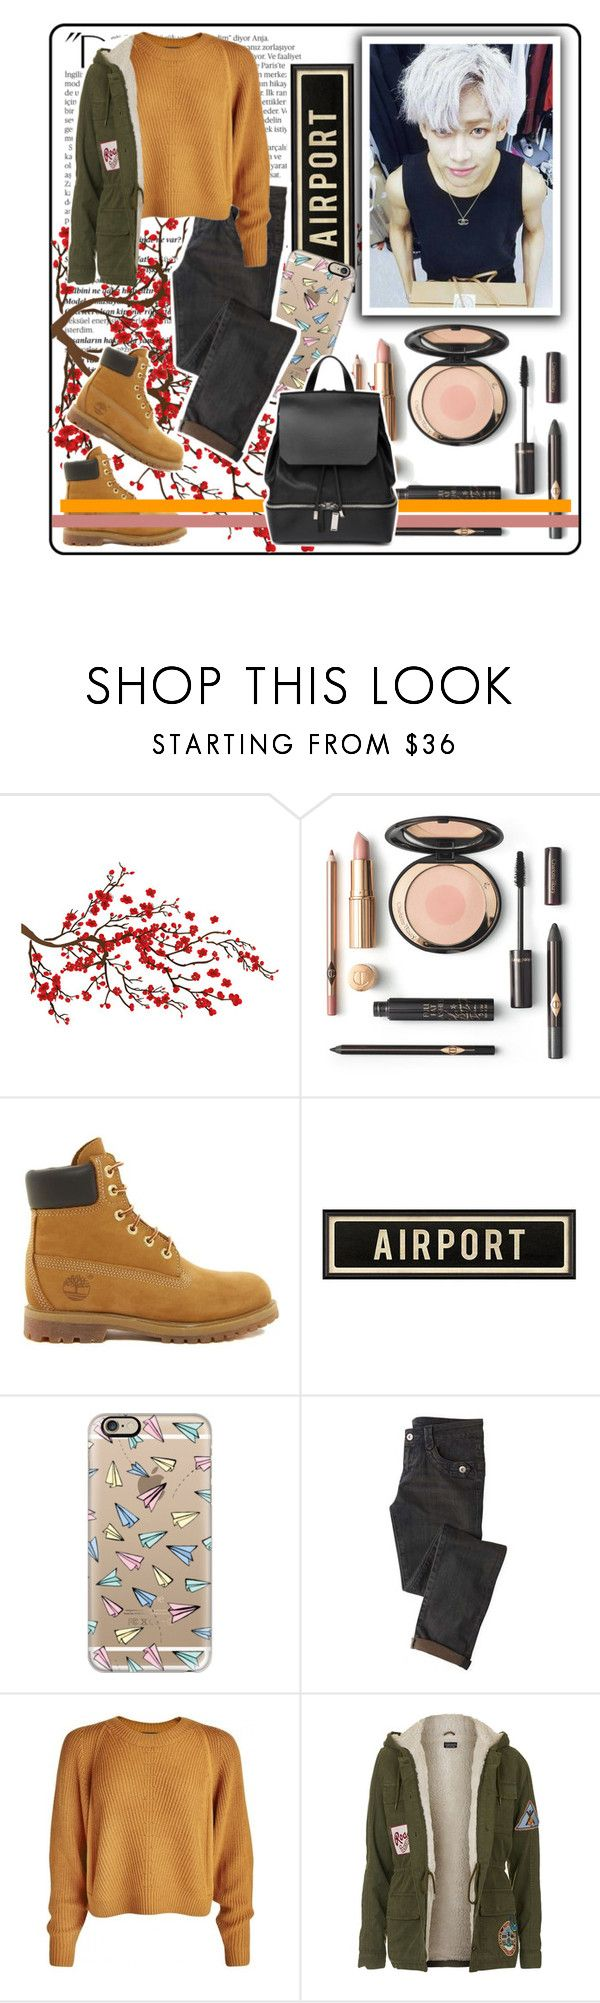 """""""280. BamBam / Kunpimook Bhuwakul"""" by staycloudyornah ❤ liked on Polyvore featuring Balmain, Brewster Home Fashions, Timberland, Casetify, Topshop and COSTUME NATIONAL"""